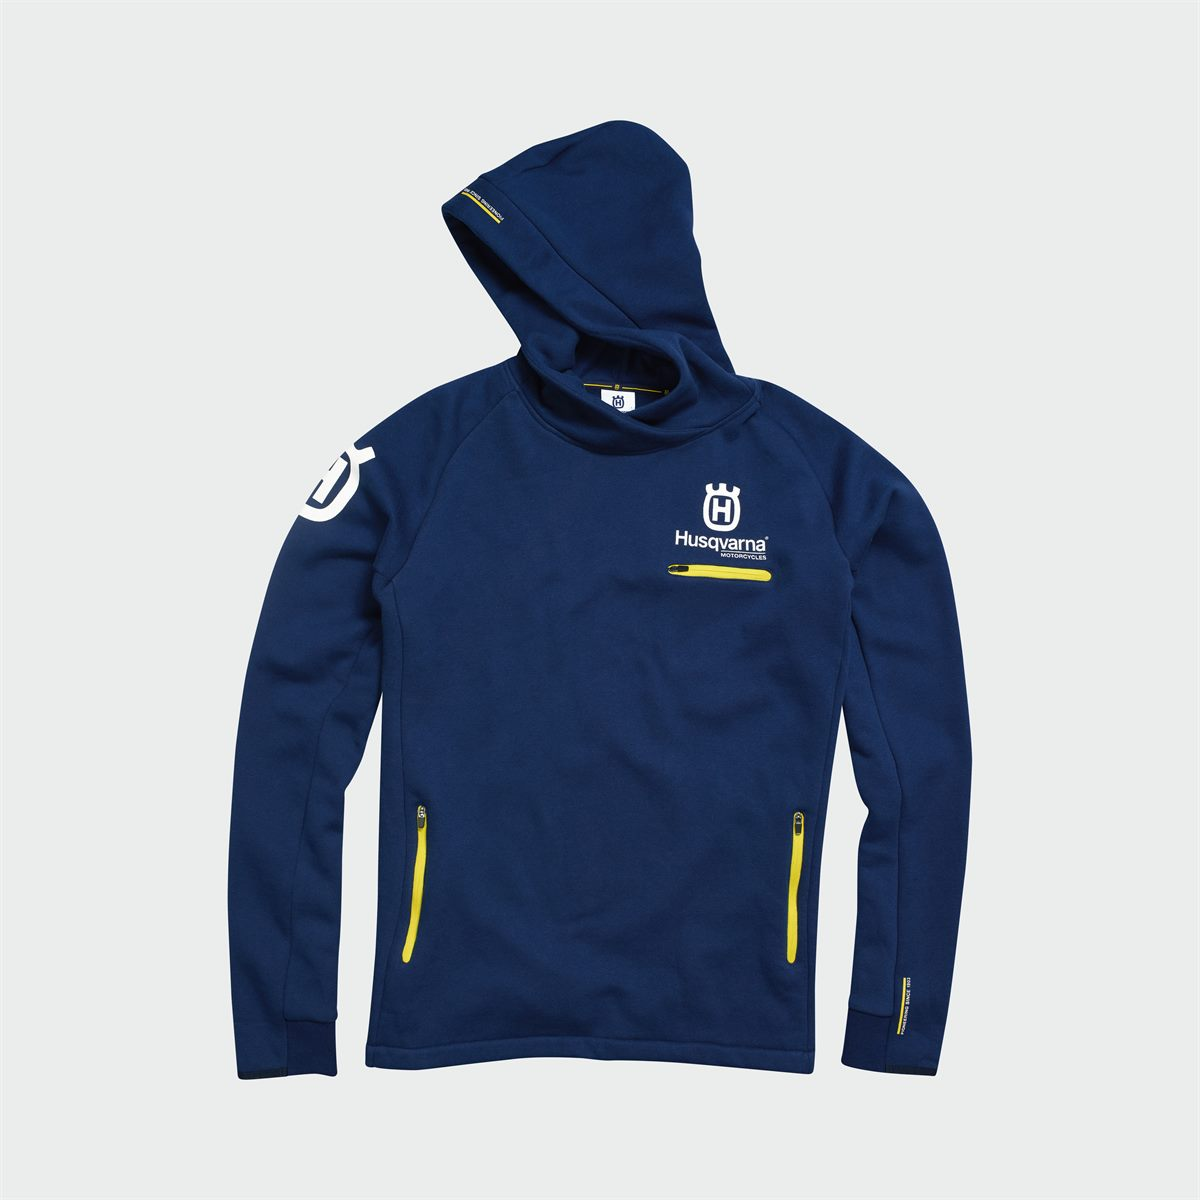 2019 HUSQVARNA REPLICA TEAM WEAR - REPLICA TEAM HOODIE FRONT